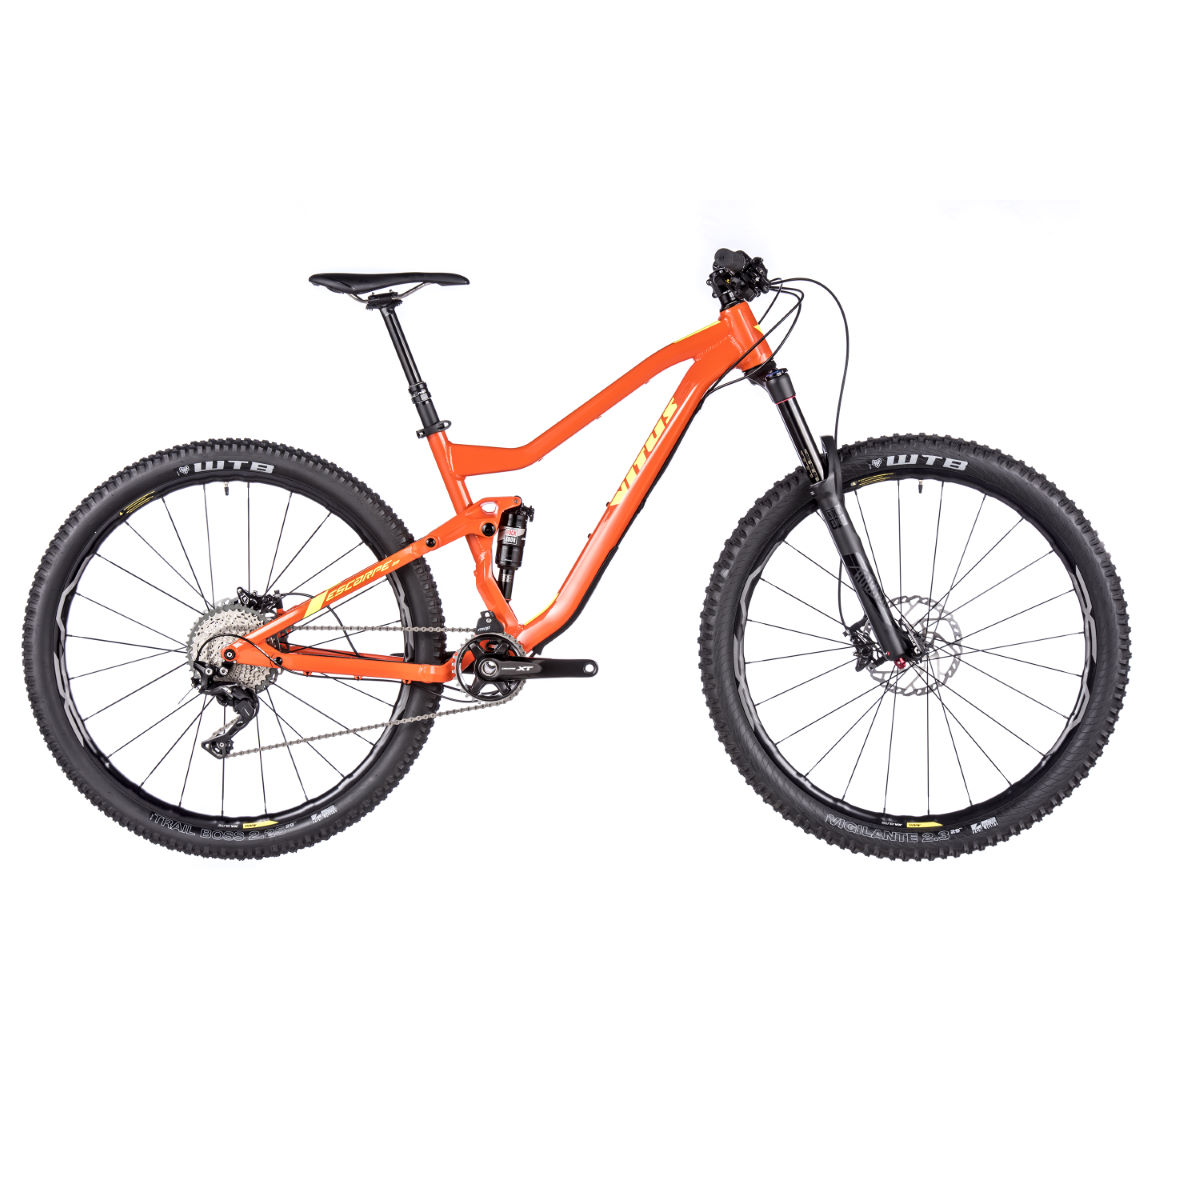 VTT Vitus Escarpe 29 VRX (2017) - Small Stock Bike Orange/Yellow VTT tout suspendu